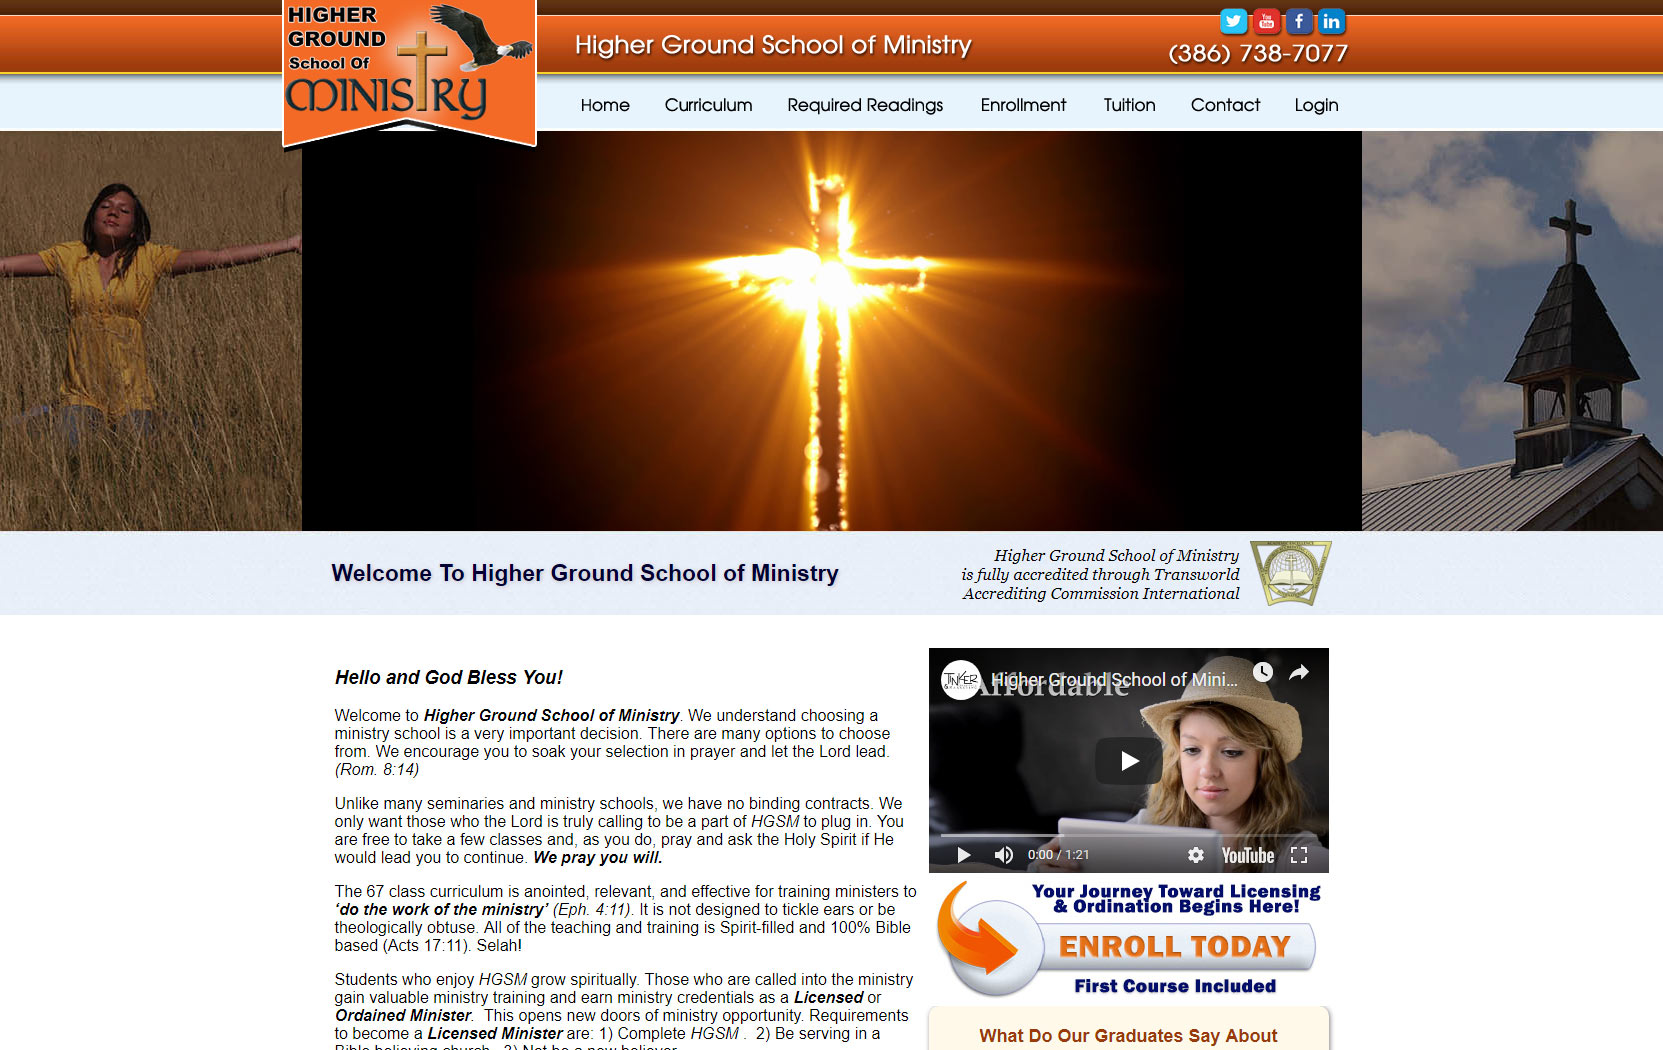 Higher Ground School of Ministry